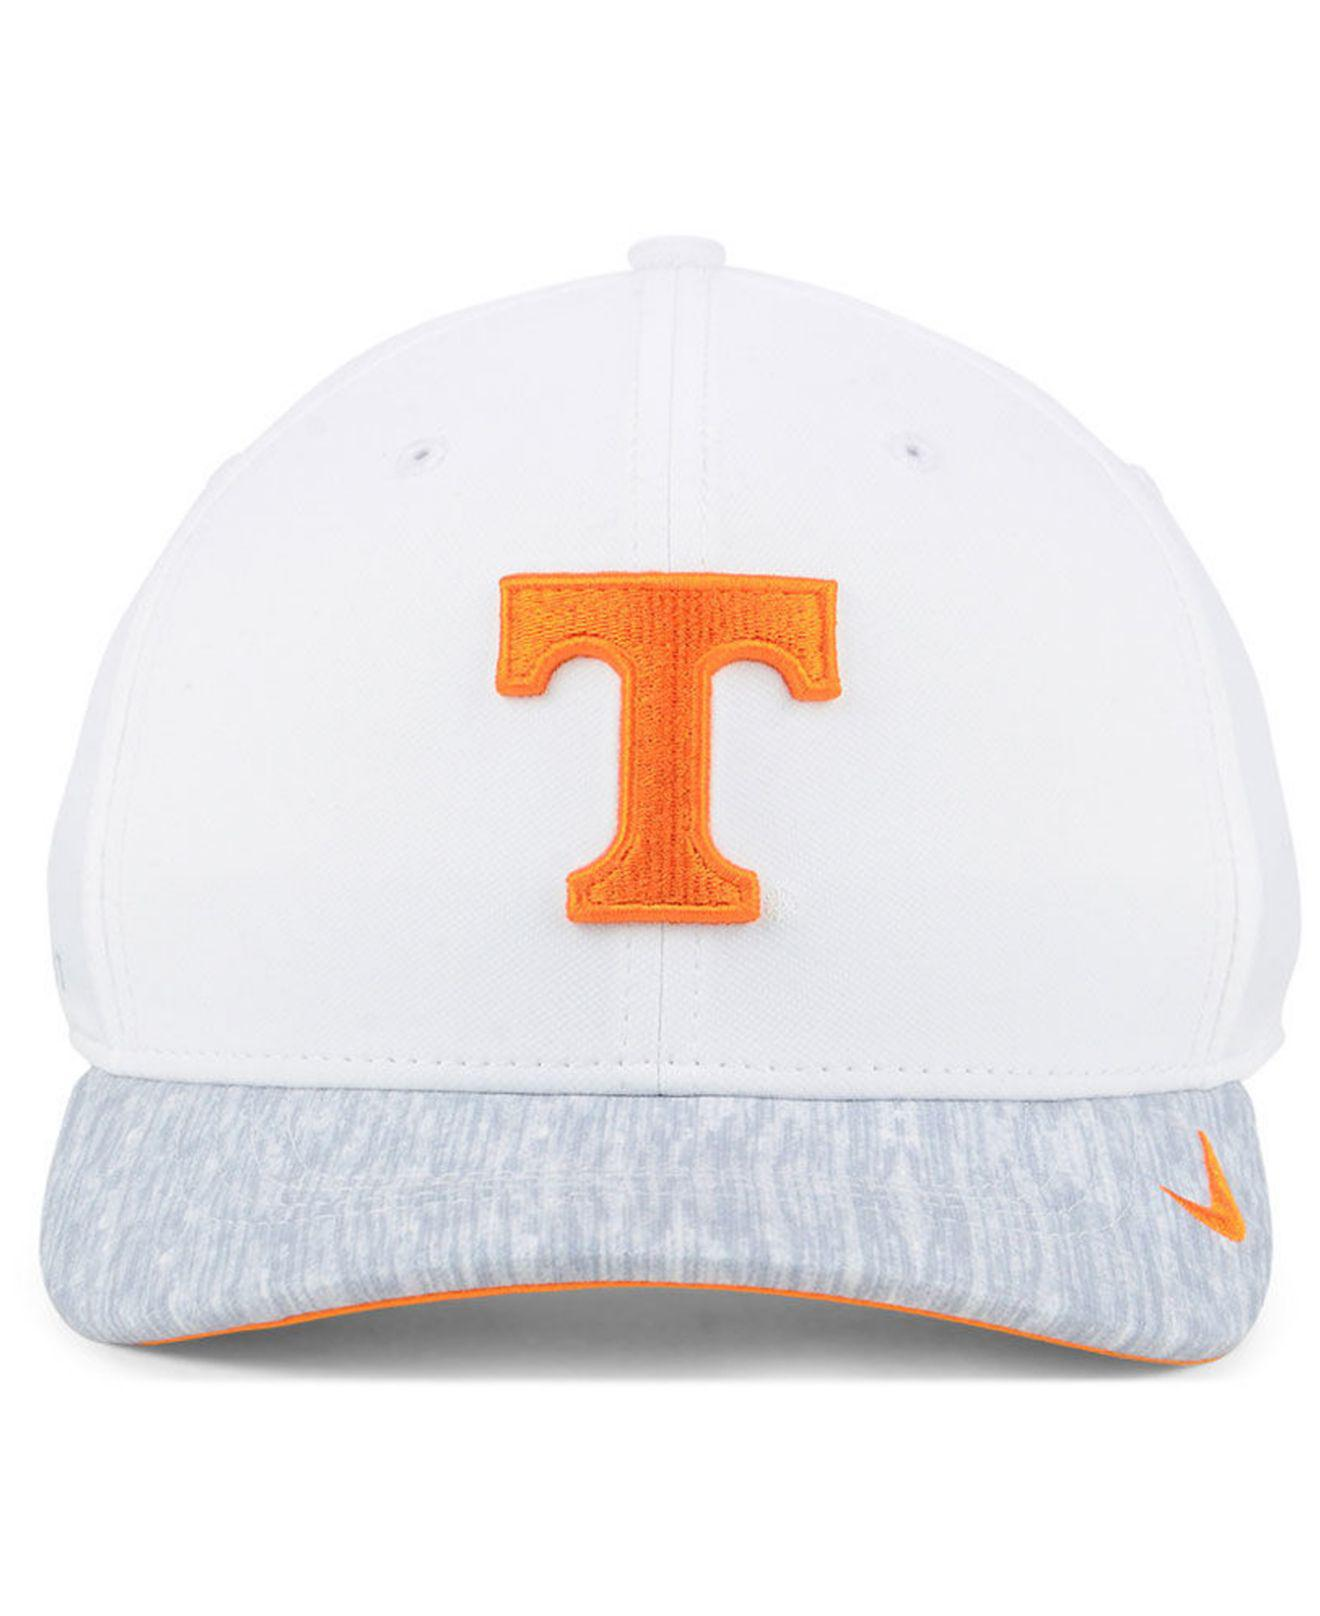 best loved 9a84a 7ecf8 Lyst - Nike Tennessee Volunteers Arobill Swoosh Flex Cap in White ...